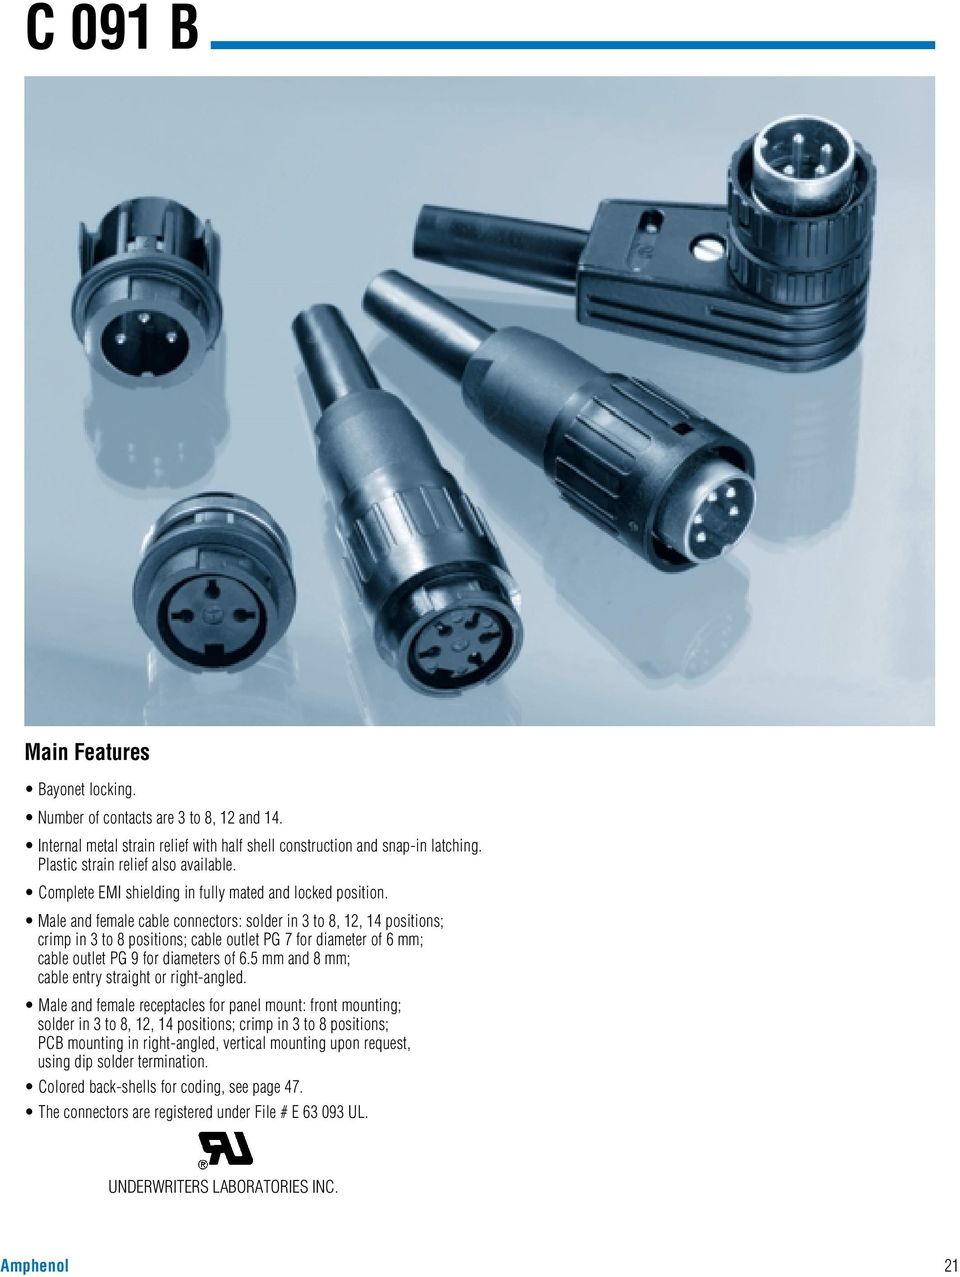 Male and female cable connectors: solder in 3 to 8, 12, 14 positions; crimp in 3 to 8 positions; cable outlet PG 7 for diameter of 6 mm; cable outlet PG 9 for diameters of 6.